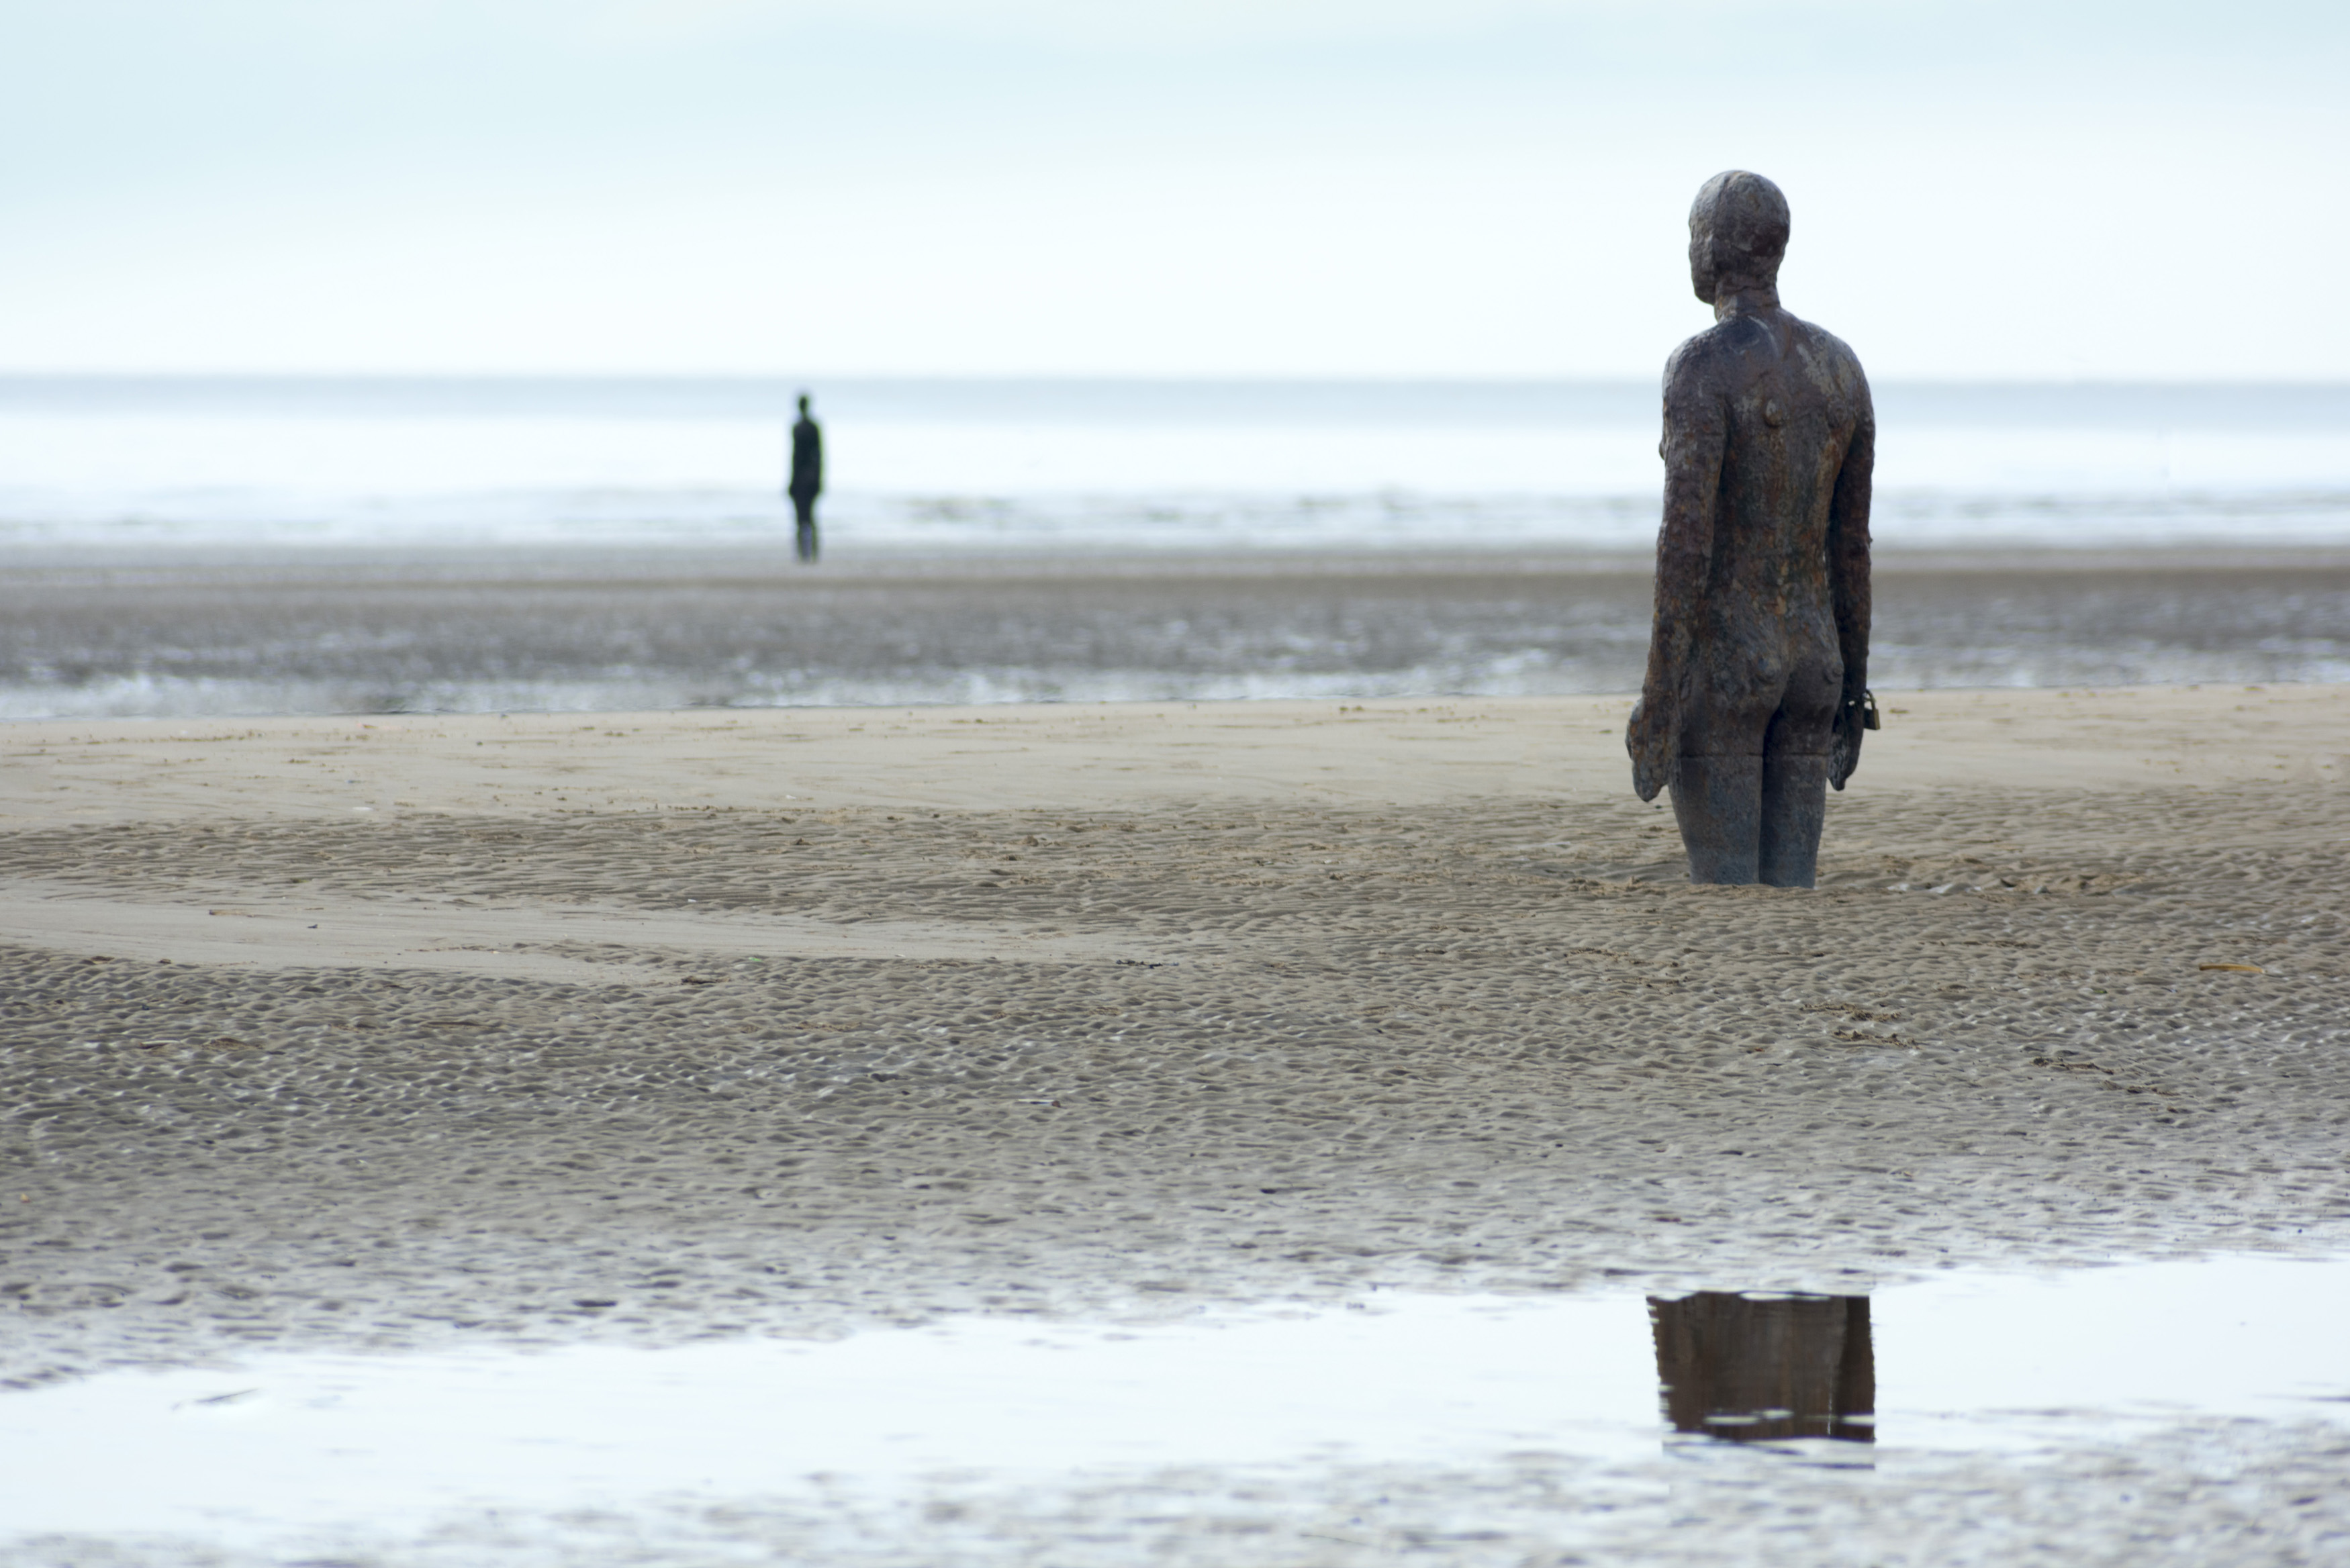 Pair of human shaped standing sculptures partially covered in sand at Crosby, UK under overcast sky